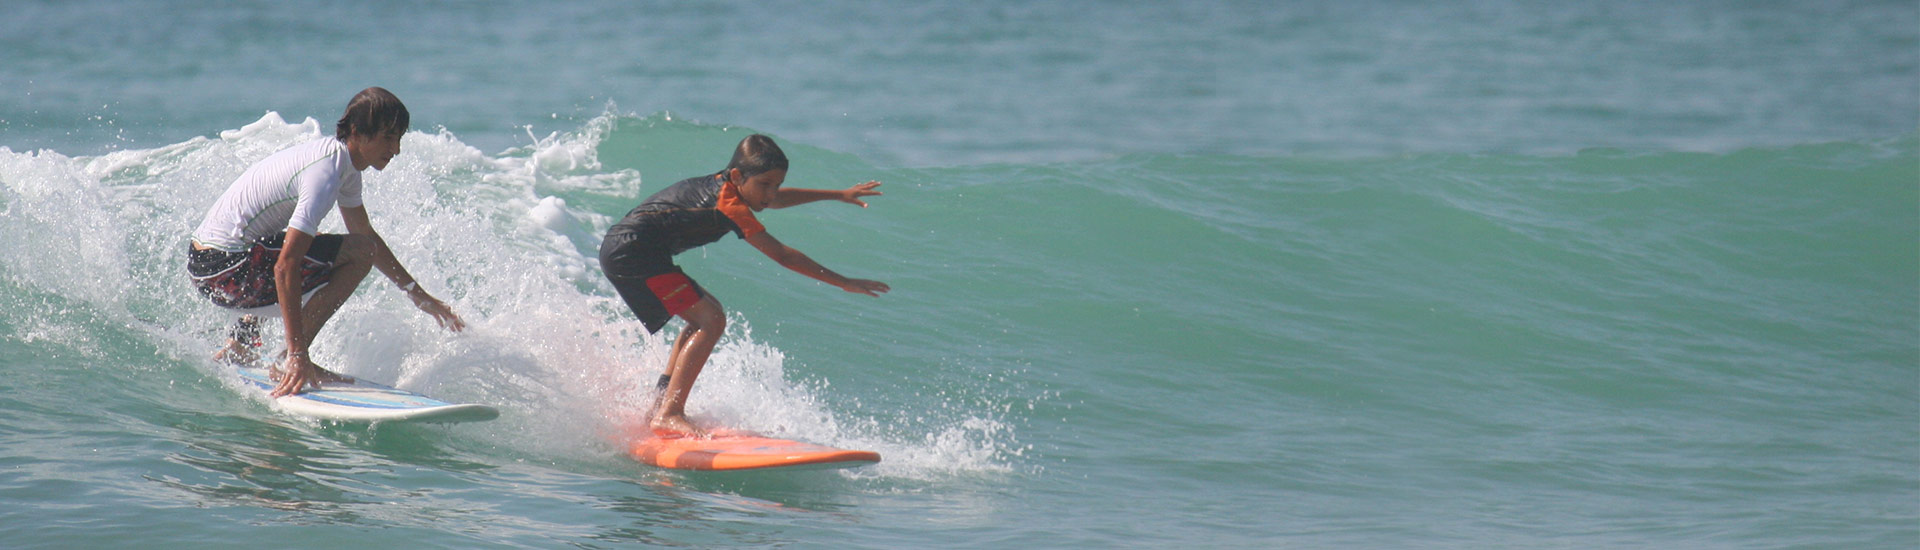 cours-particuliers-prive-surf-coach-biarritz